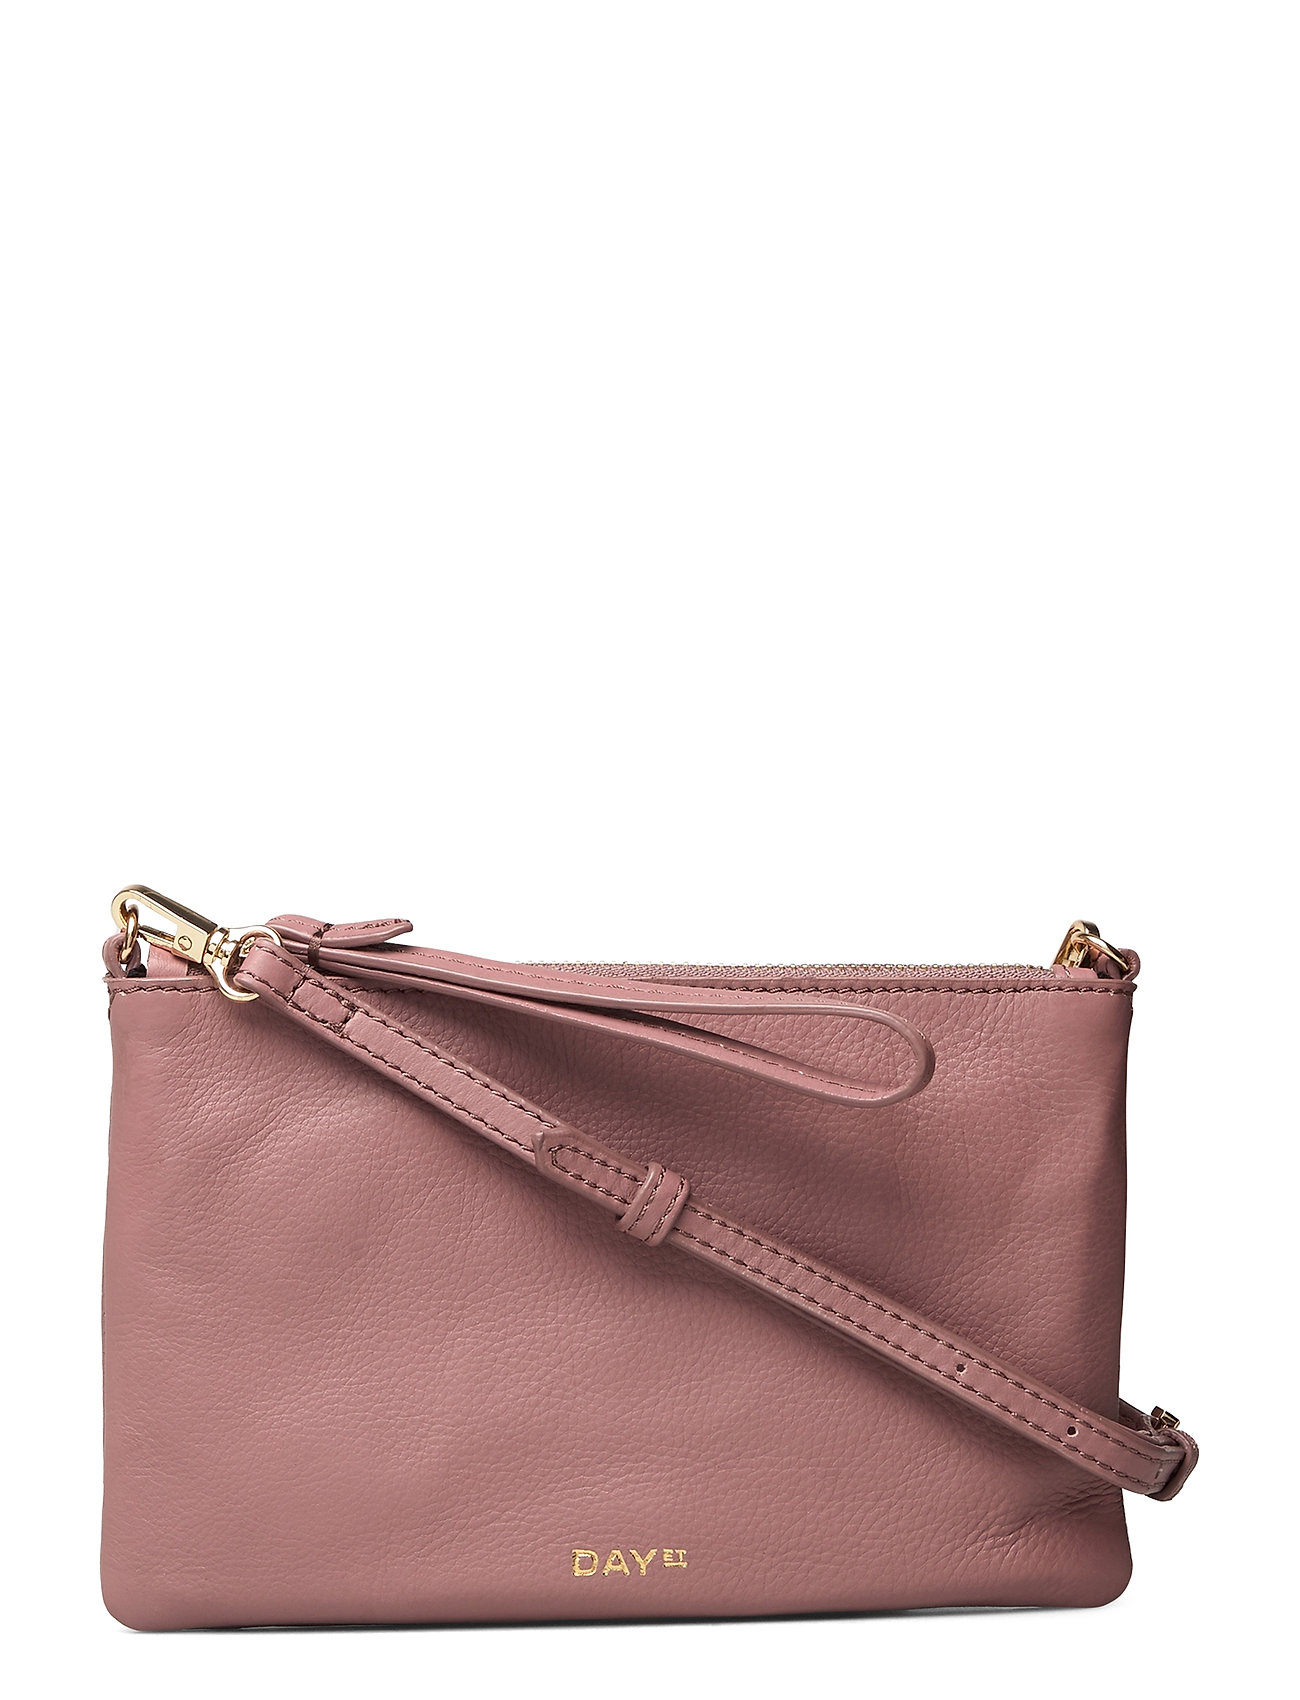 Image of Day Bern Cb Bags Small Shoulder Bags - Crossbody Bags Lyserød DAY Et (3446804029)